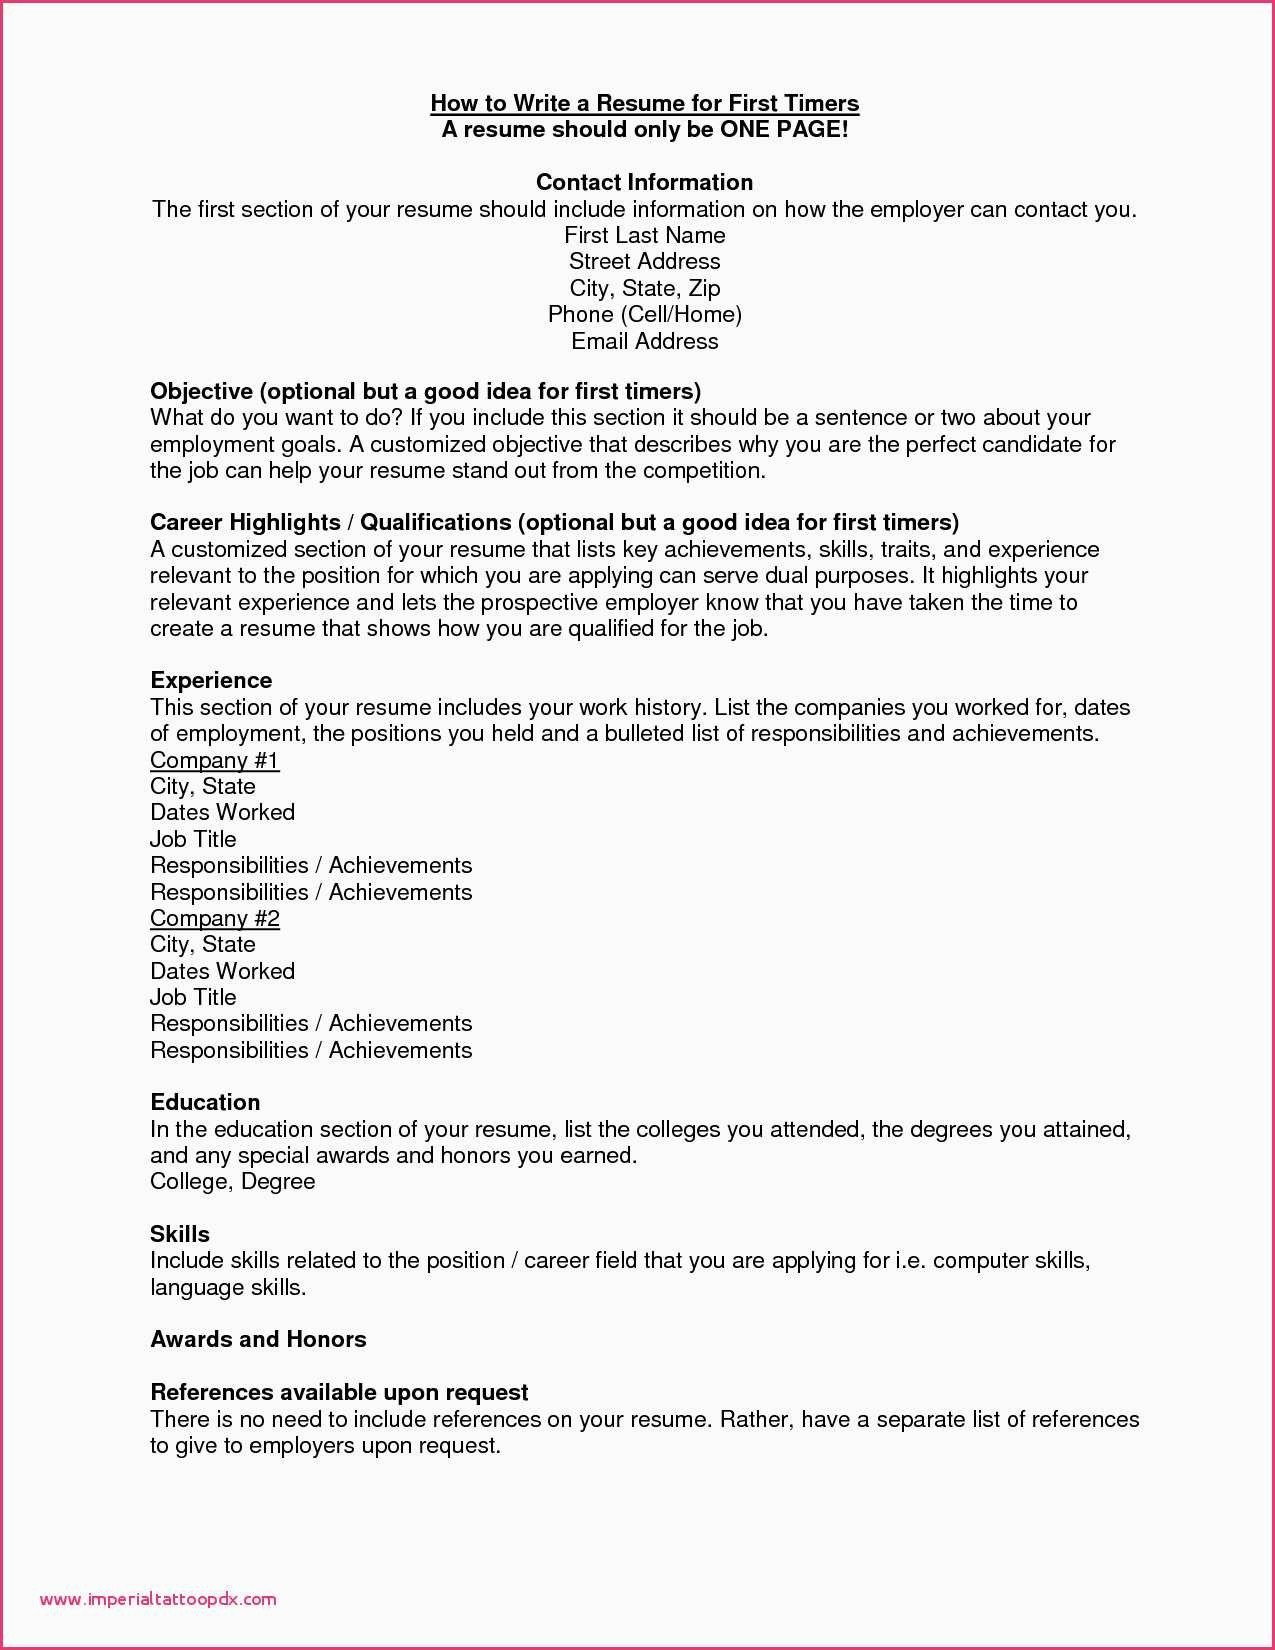 Should You Put Scholarships On Resume Best Of List Skills To Put A Resume Examples Awesome Image In 2020 Resume Examples Resume Tips Resume